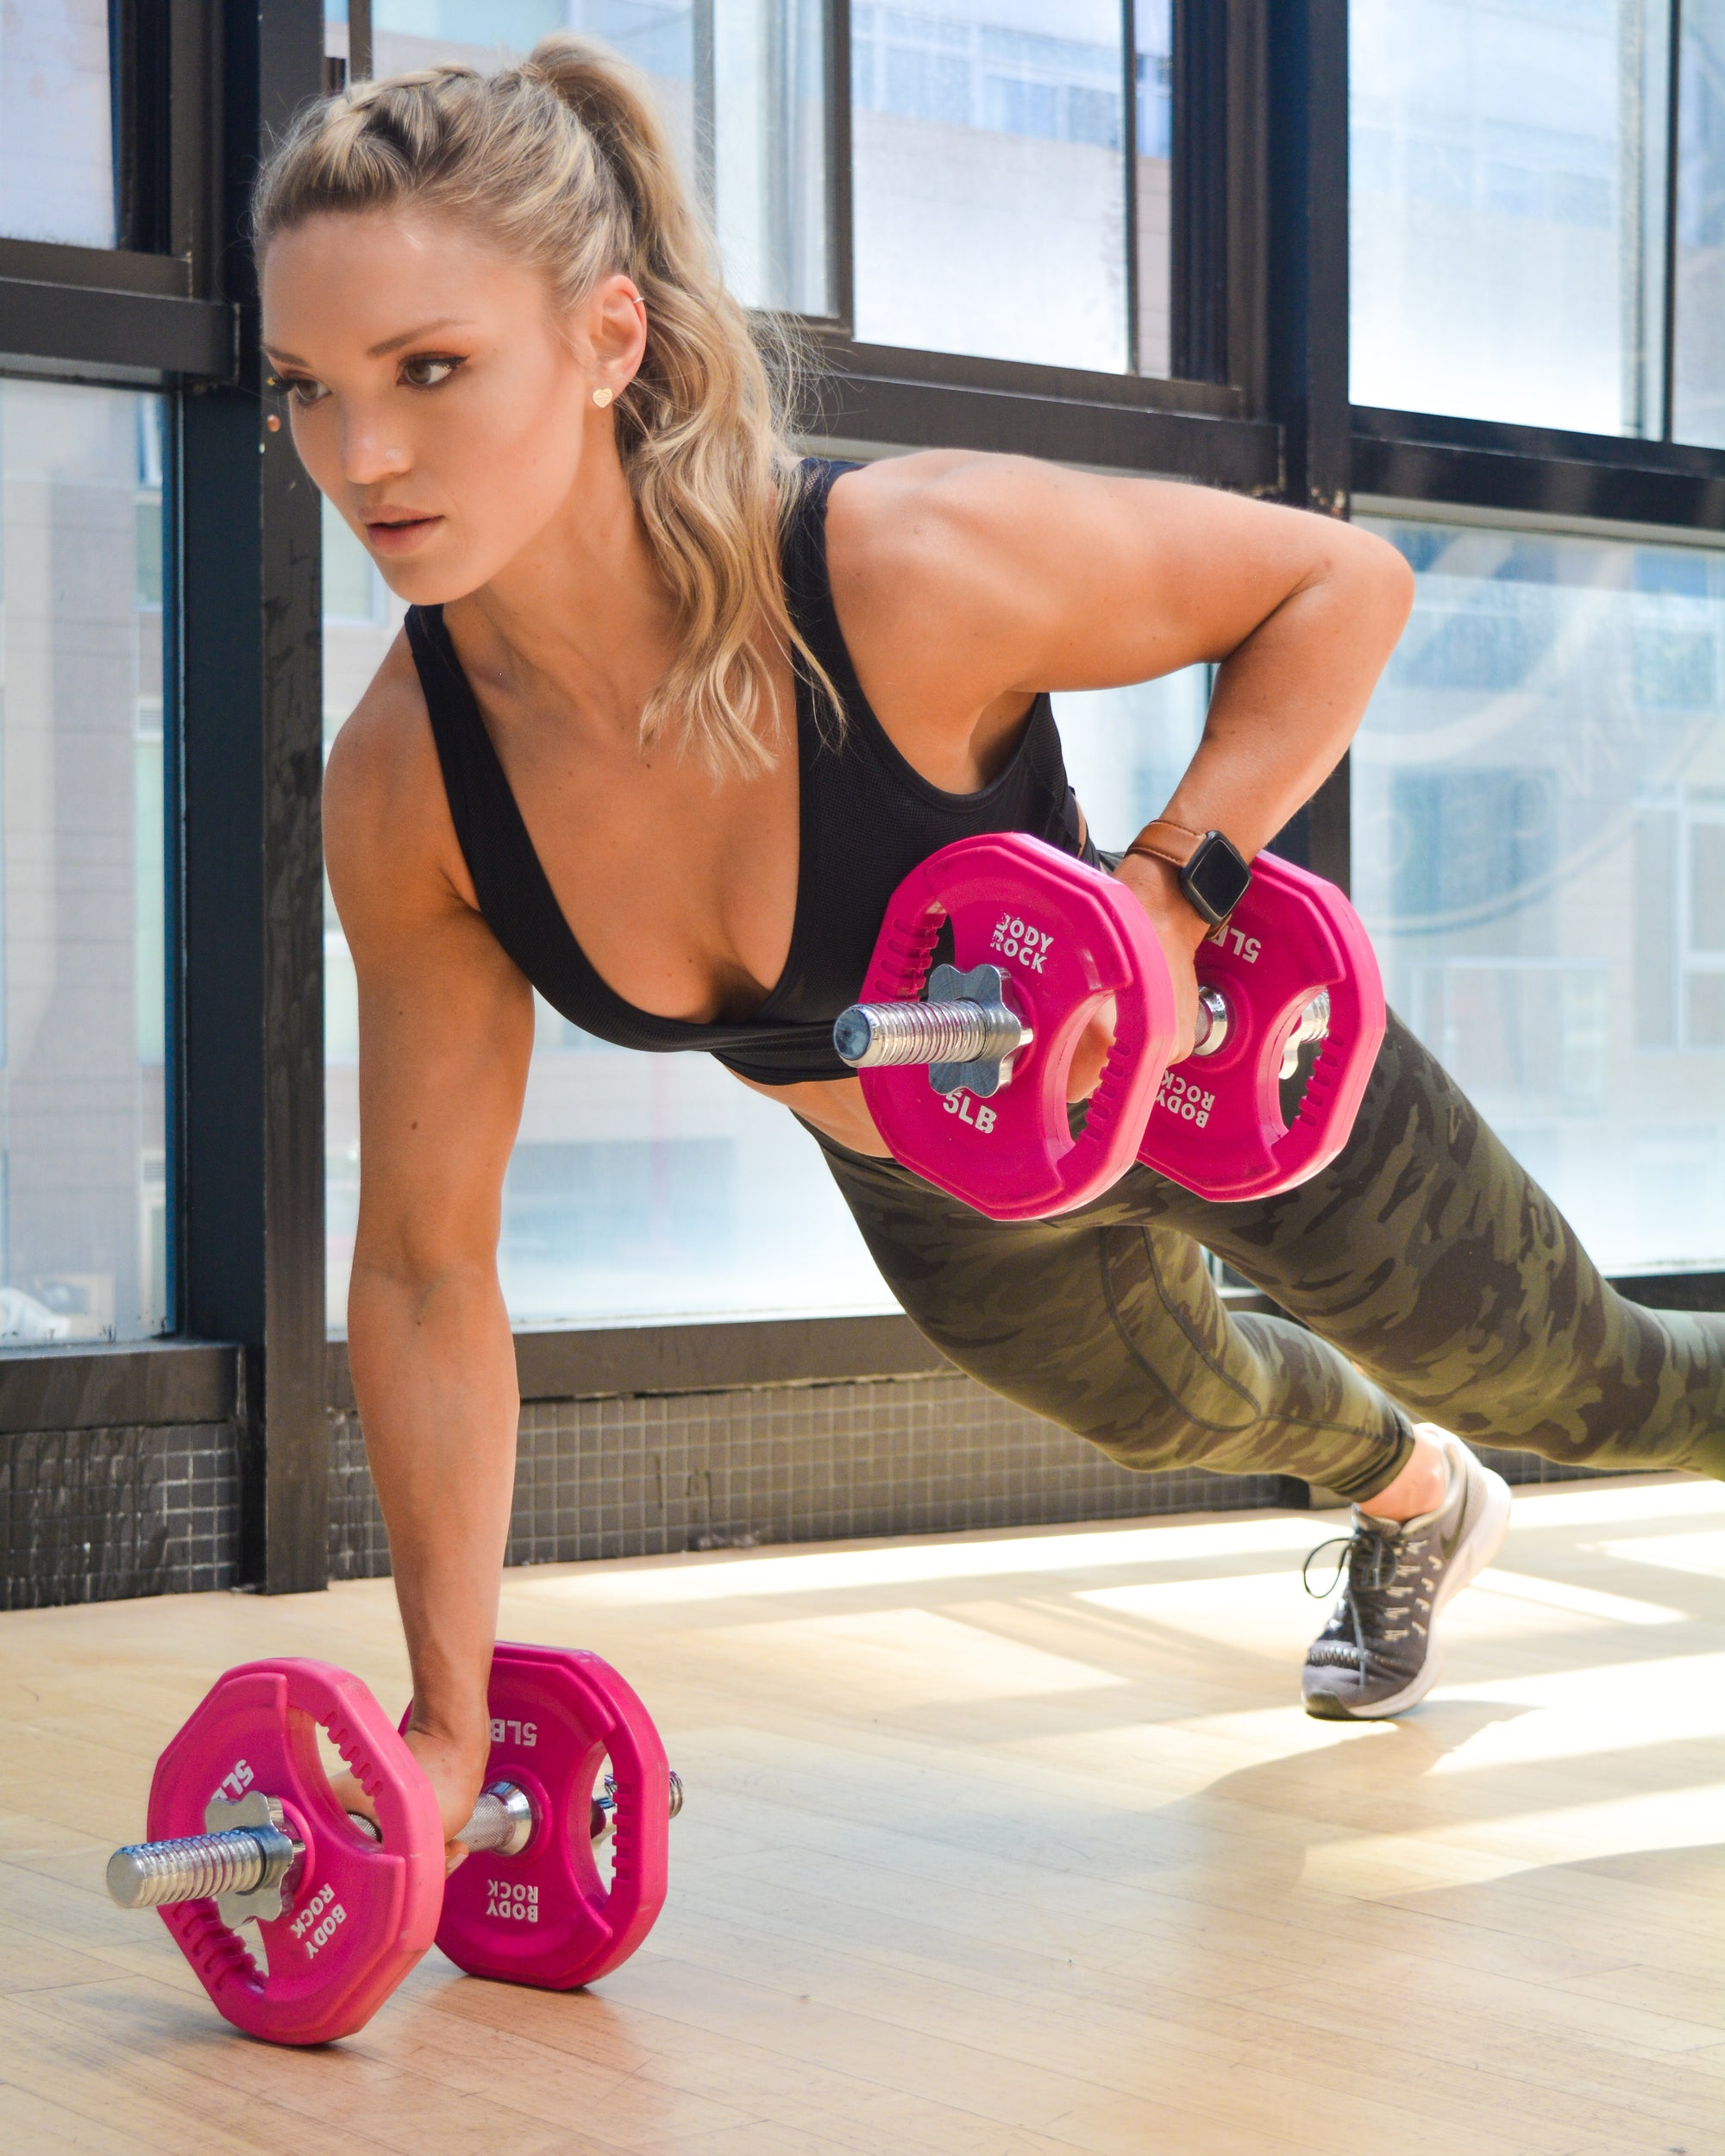 Image of Bodyrock host doing dumbbell pushups using bodyrock adjustable dumbbells